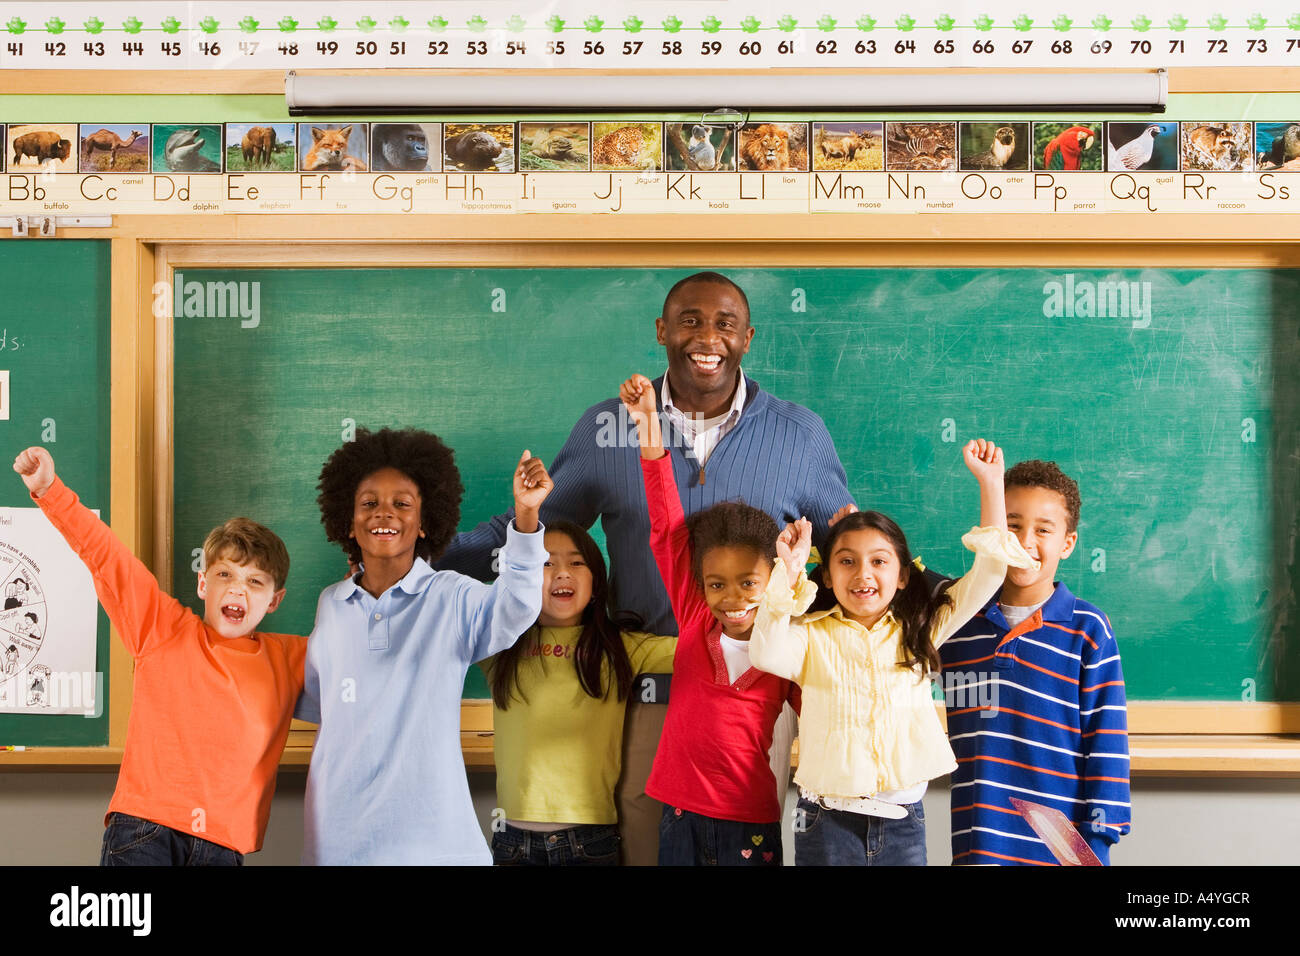 Male teacher and students cheering in classroom - Stock Image